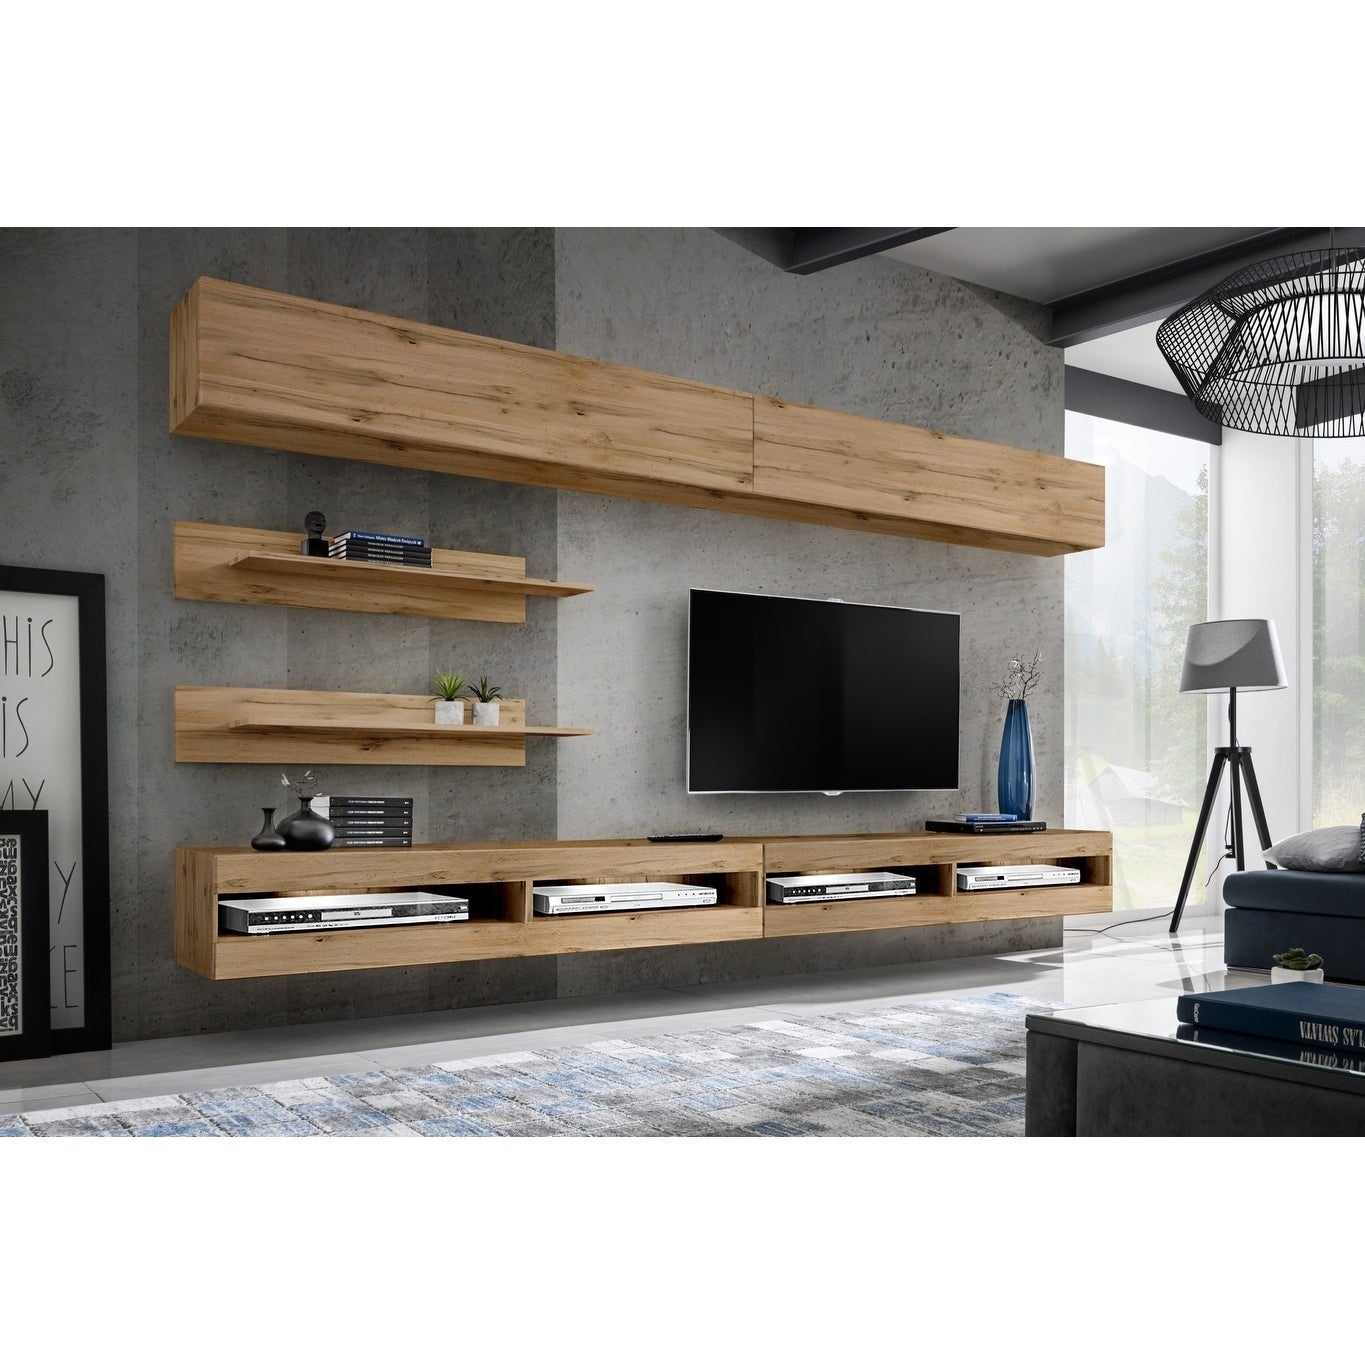 Fly I1 34tv Wall Mounted Floating Modern Entertainment Center